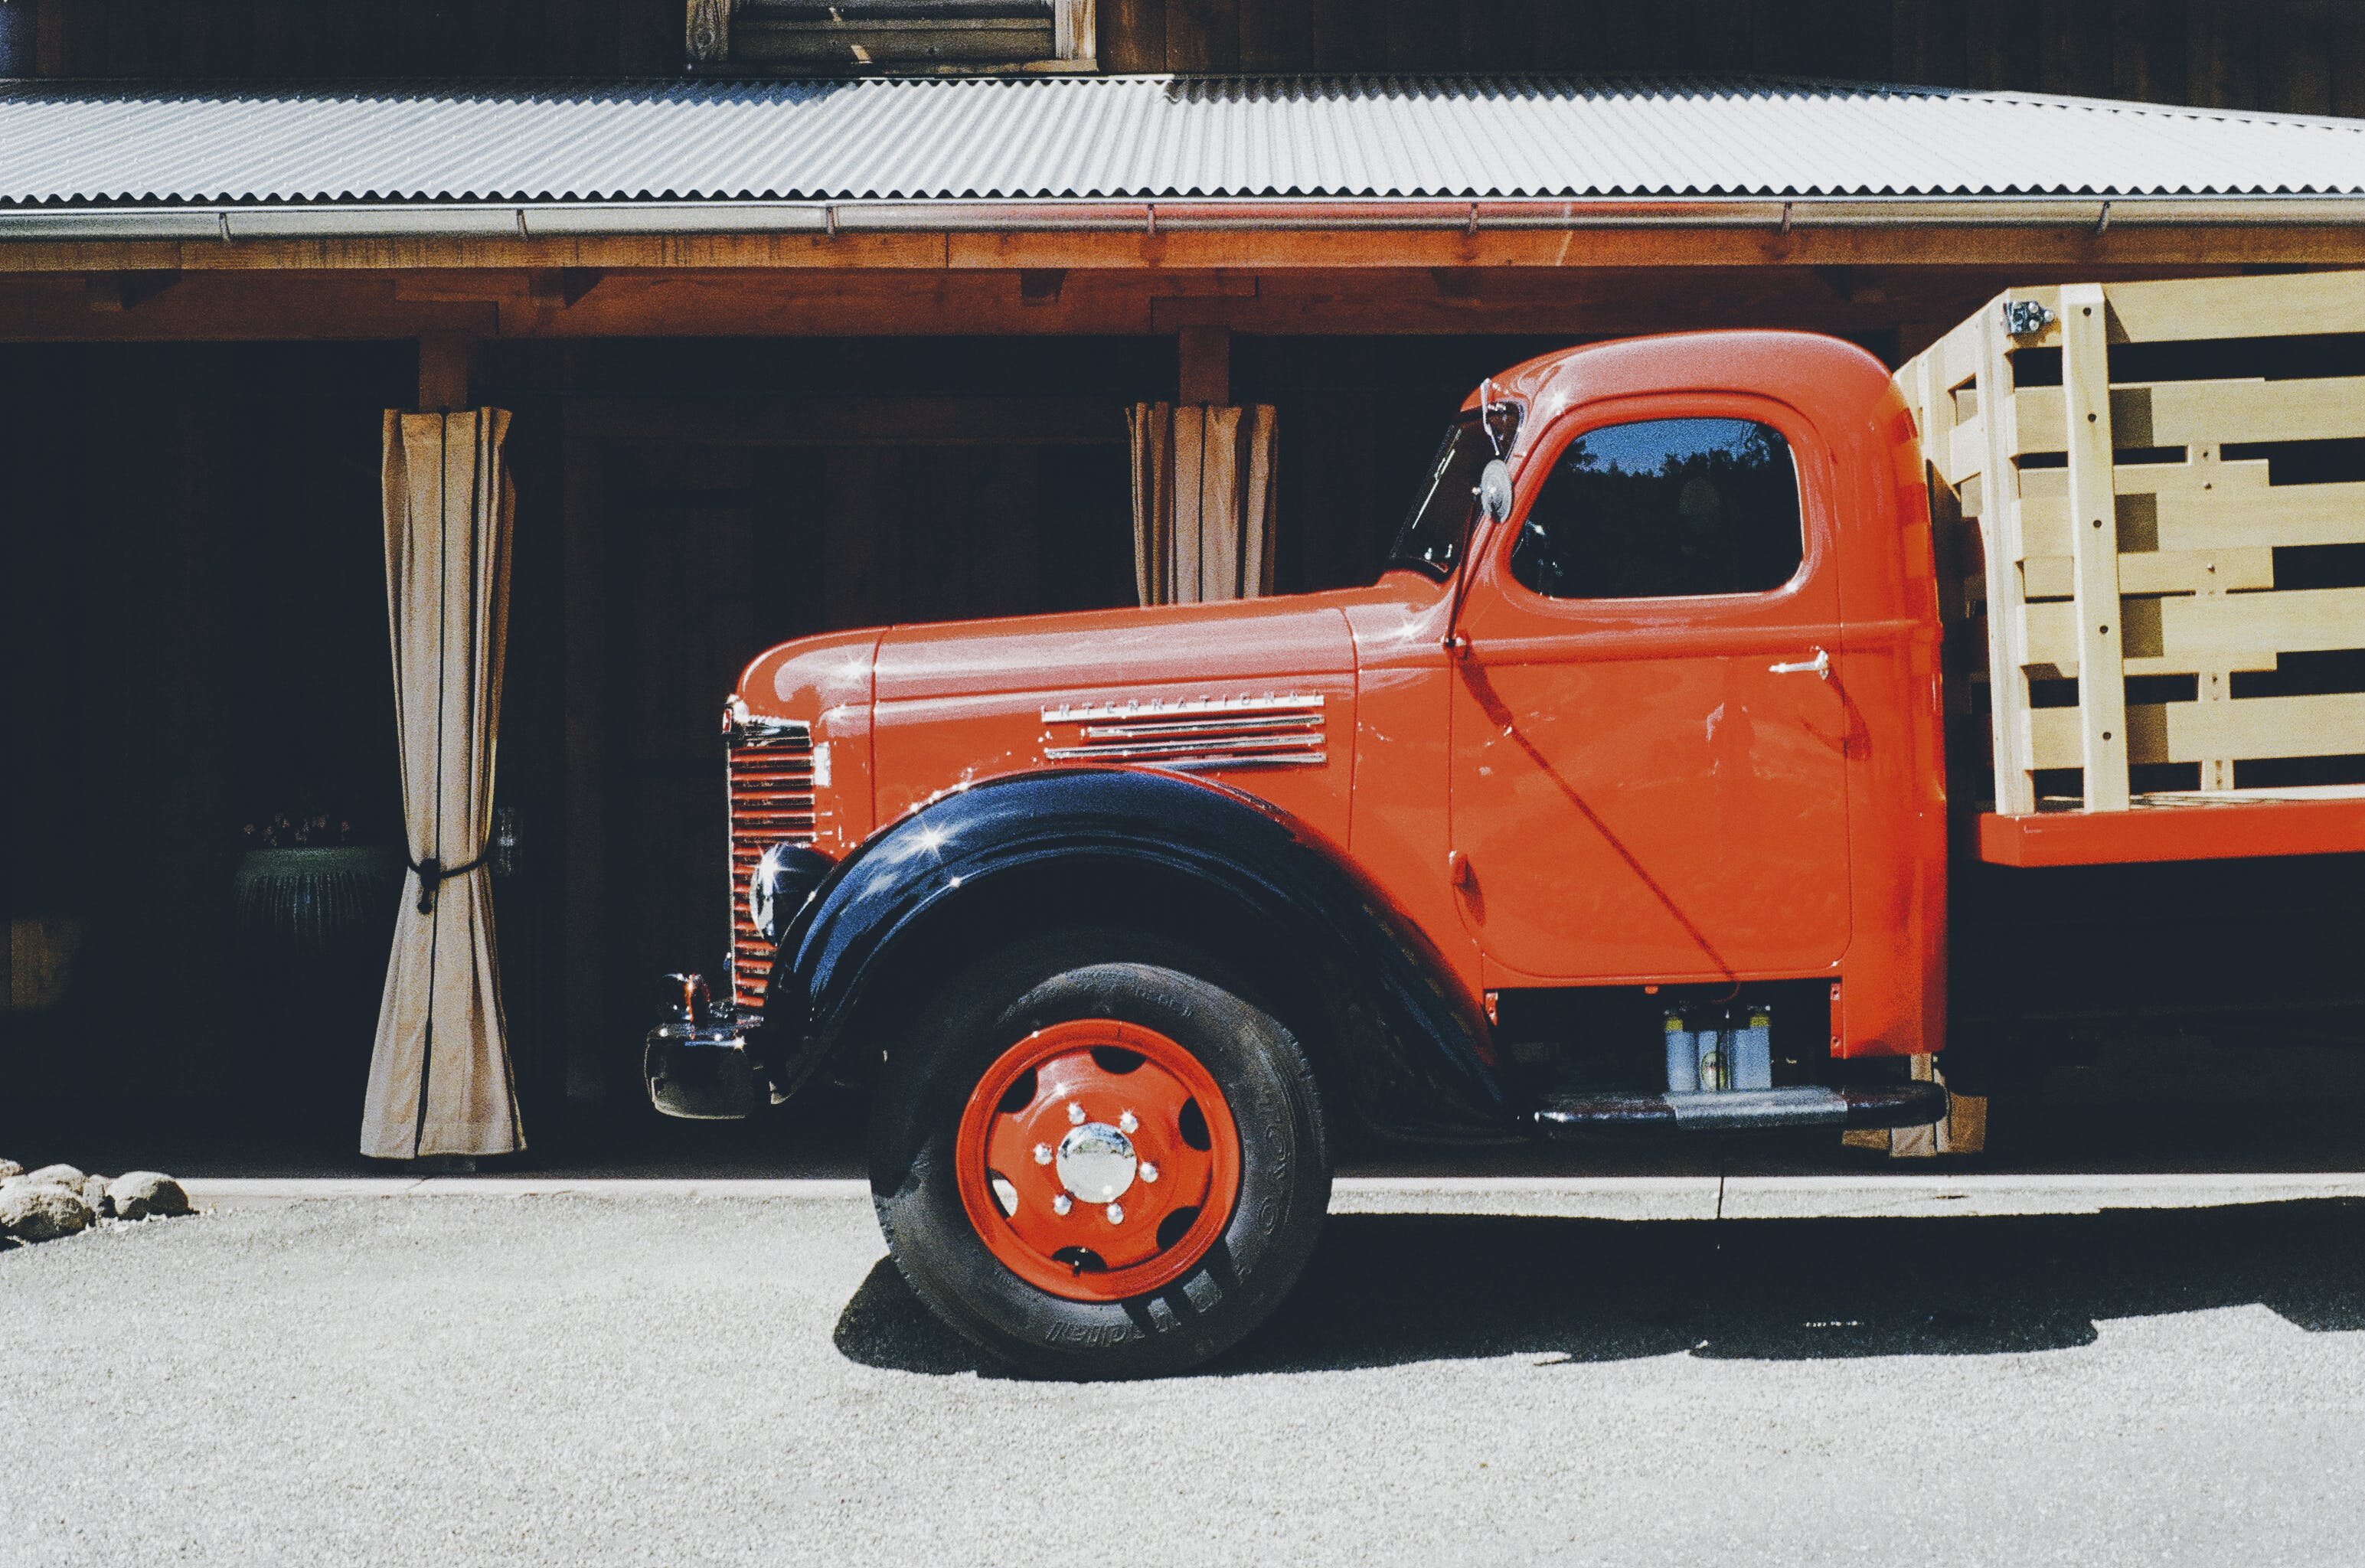 Free stock photo of vehicle, vintage, old, truck